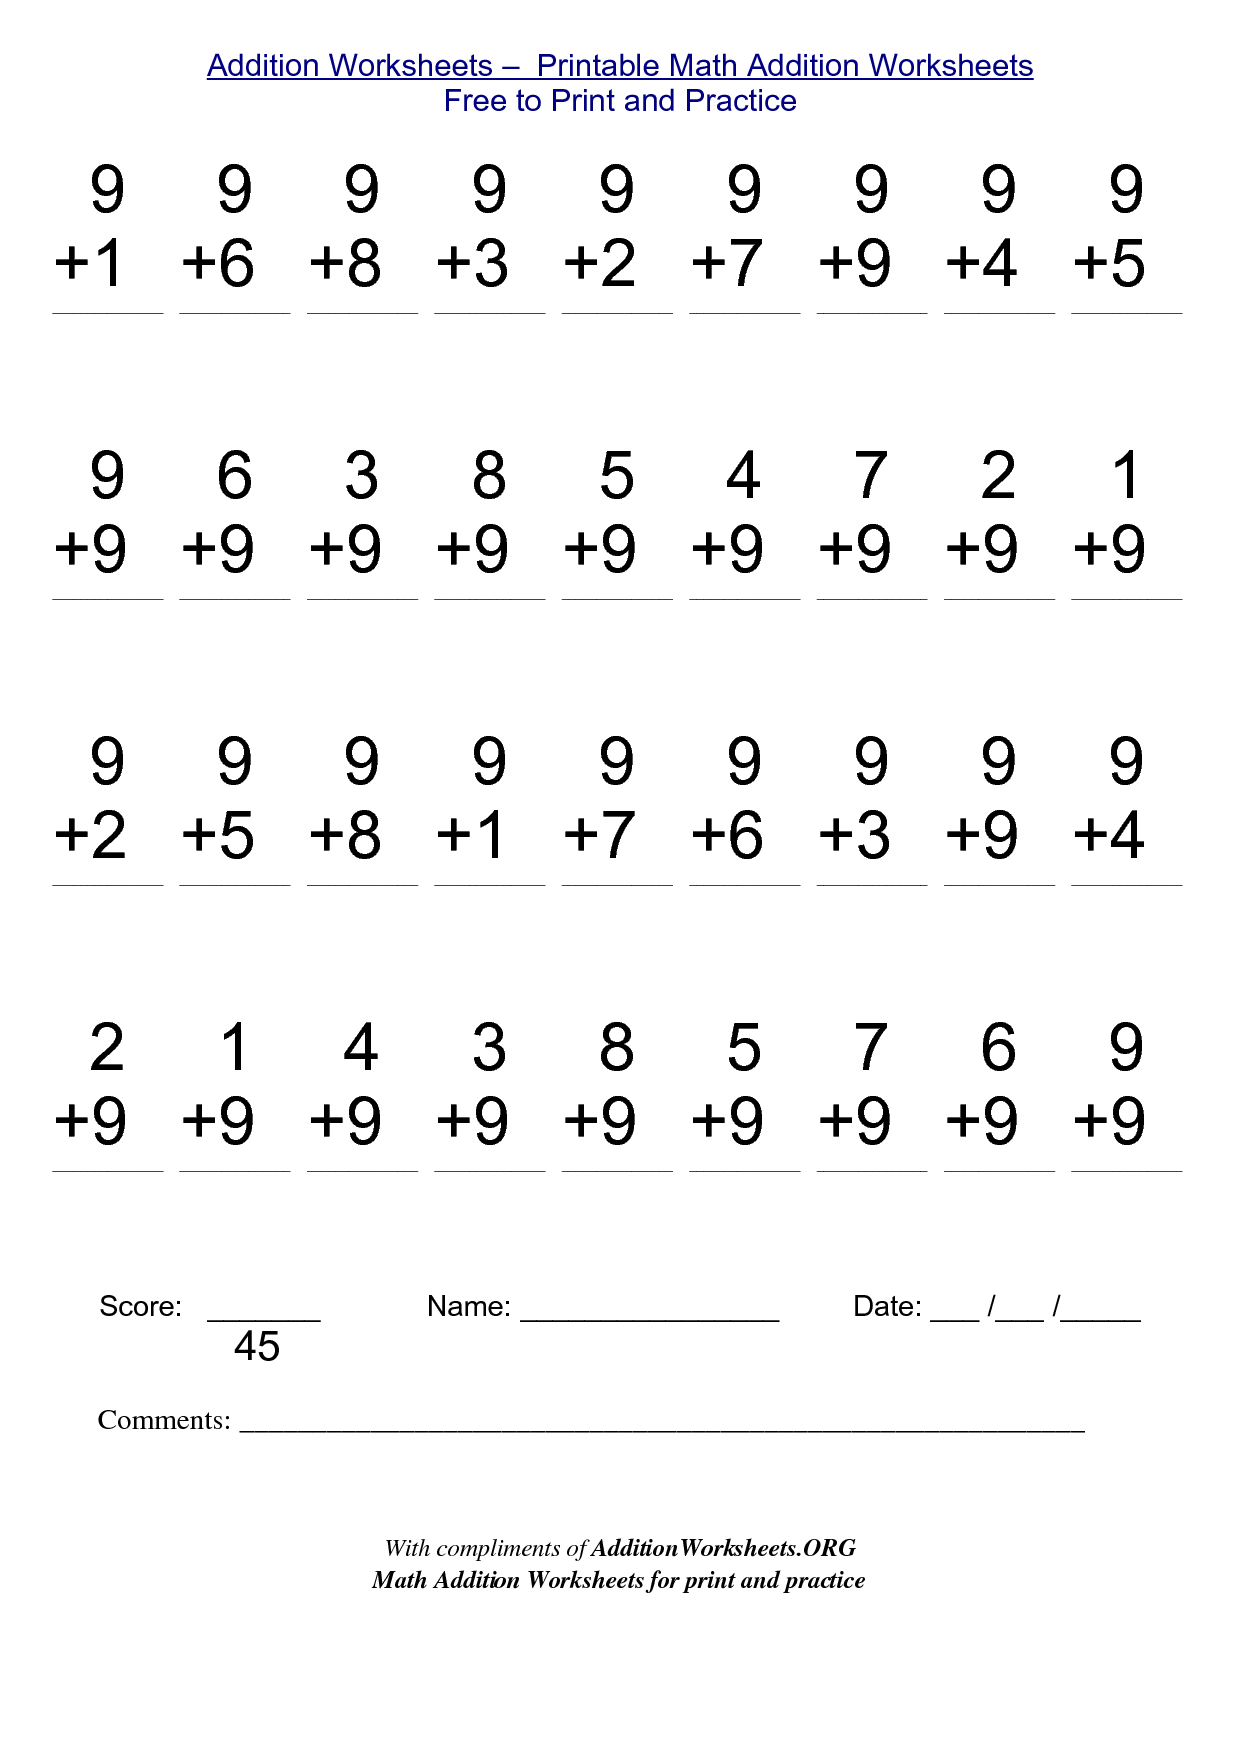 Math Worksheets for Free to Print Alot ME – Free Printable Second Grade Worksheets